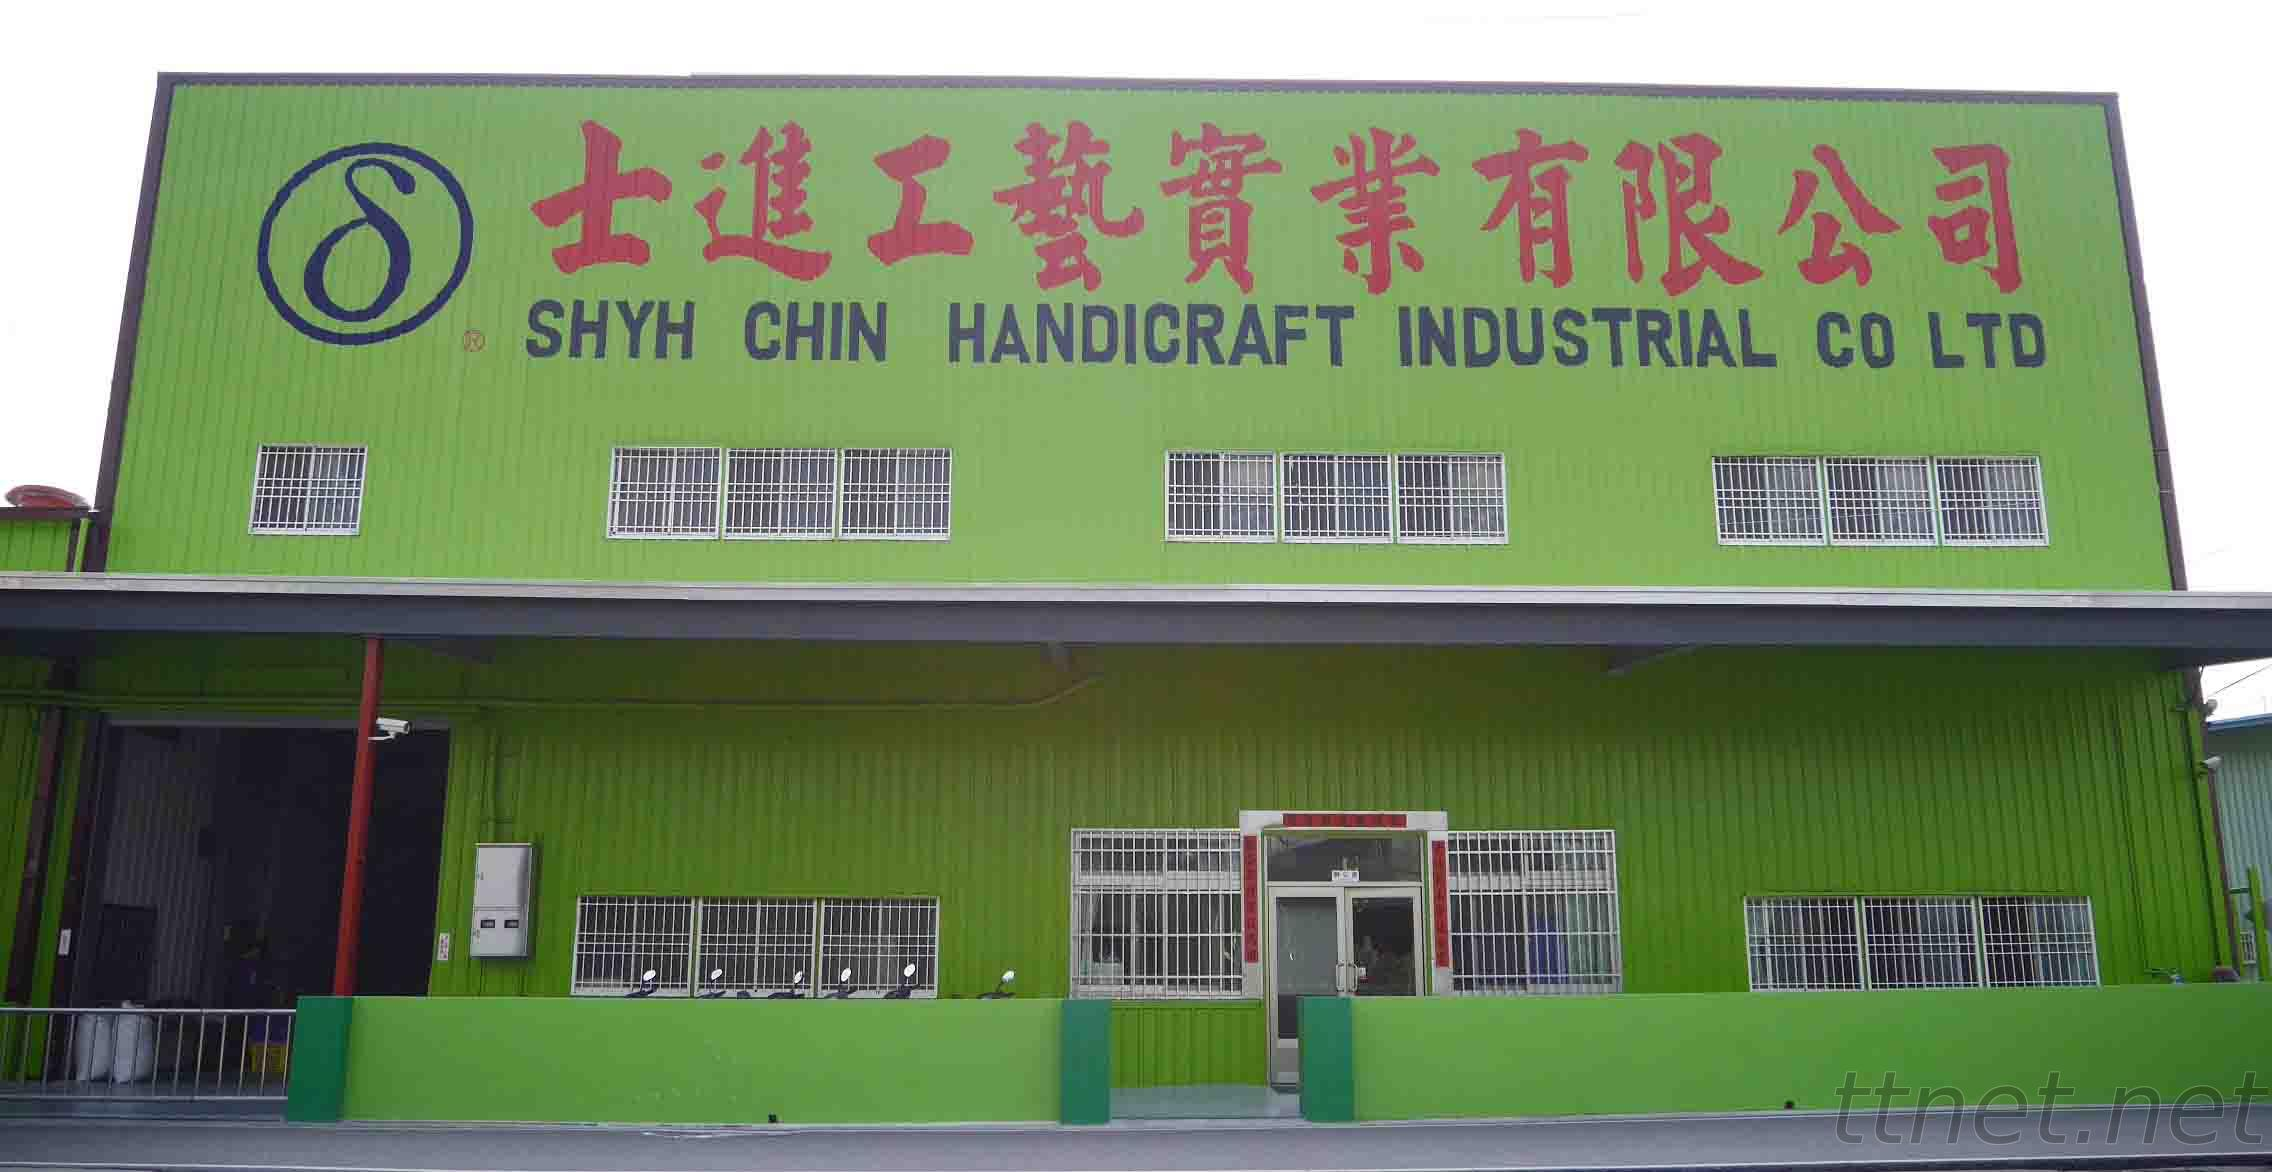 Shyh Chin Handicraft Industrial Co., Ltd.